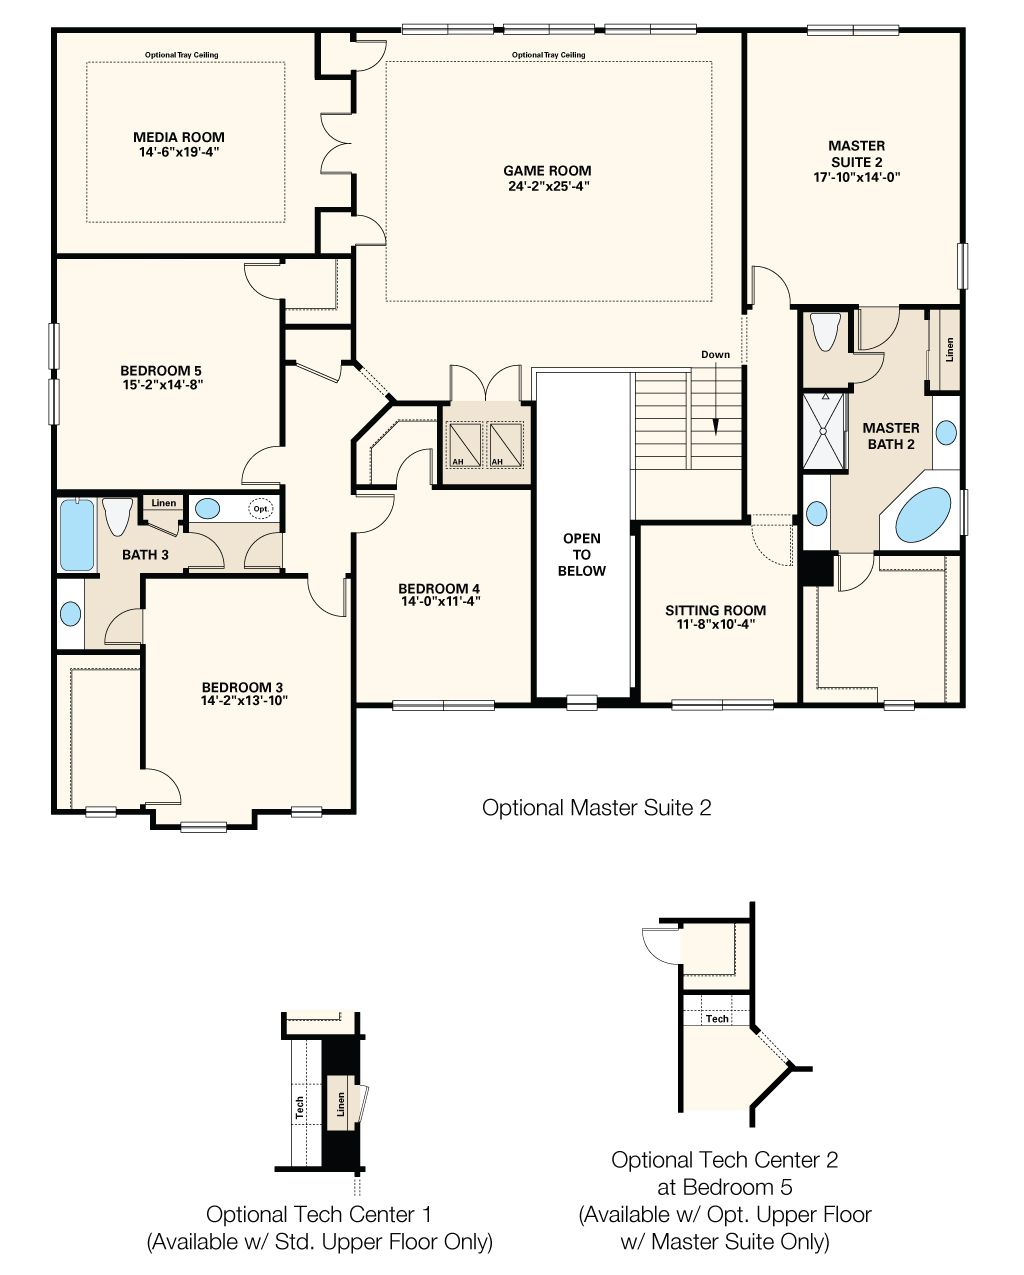 New Homes By Taylor Morrison Floor Plans Open Baths New Homes